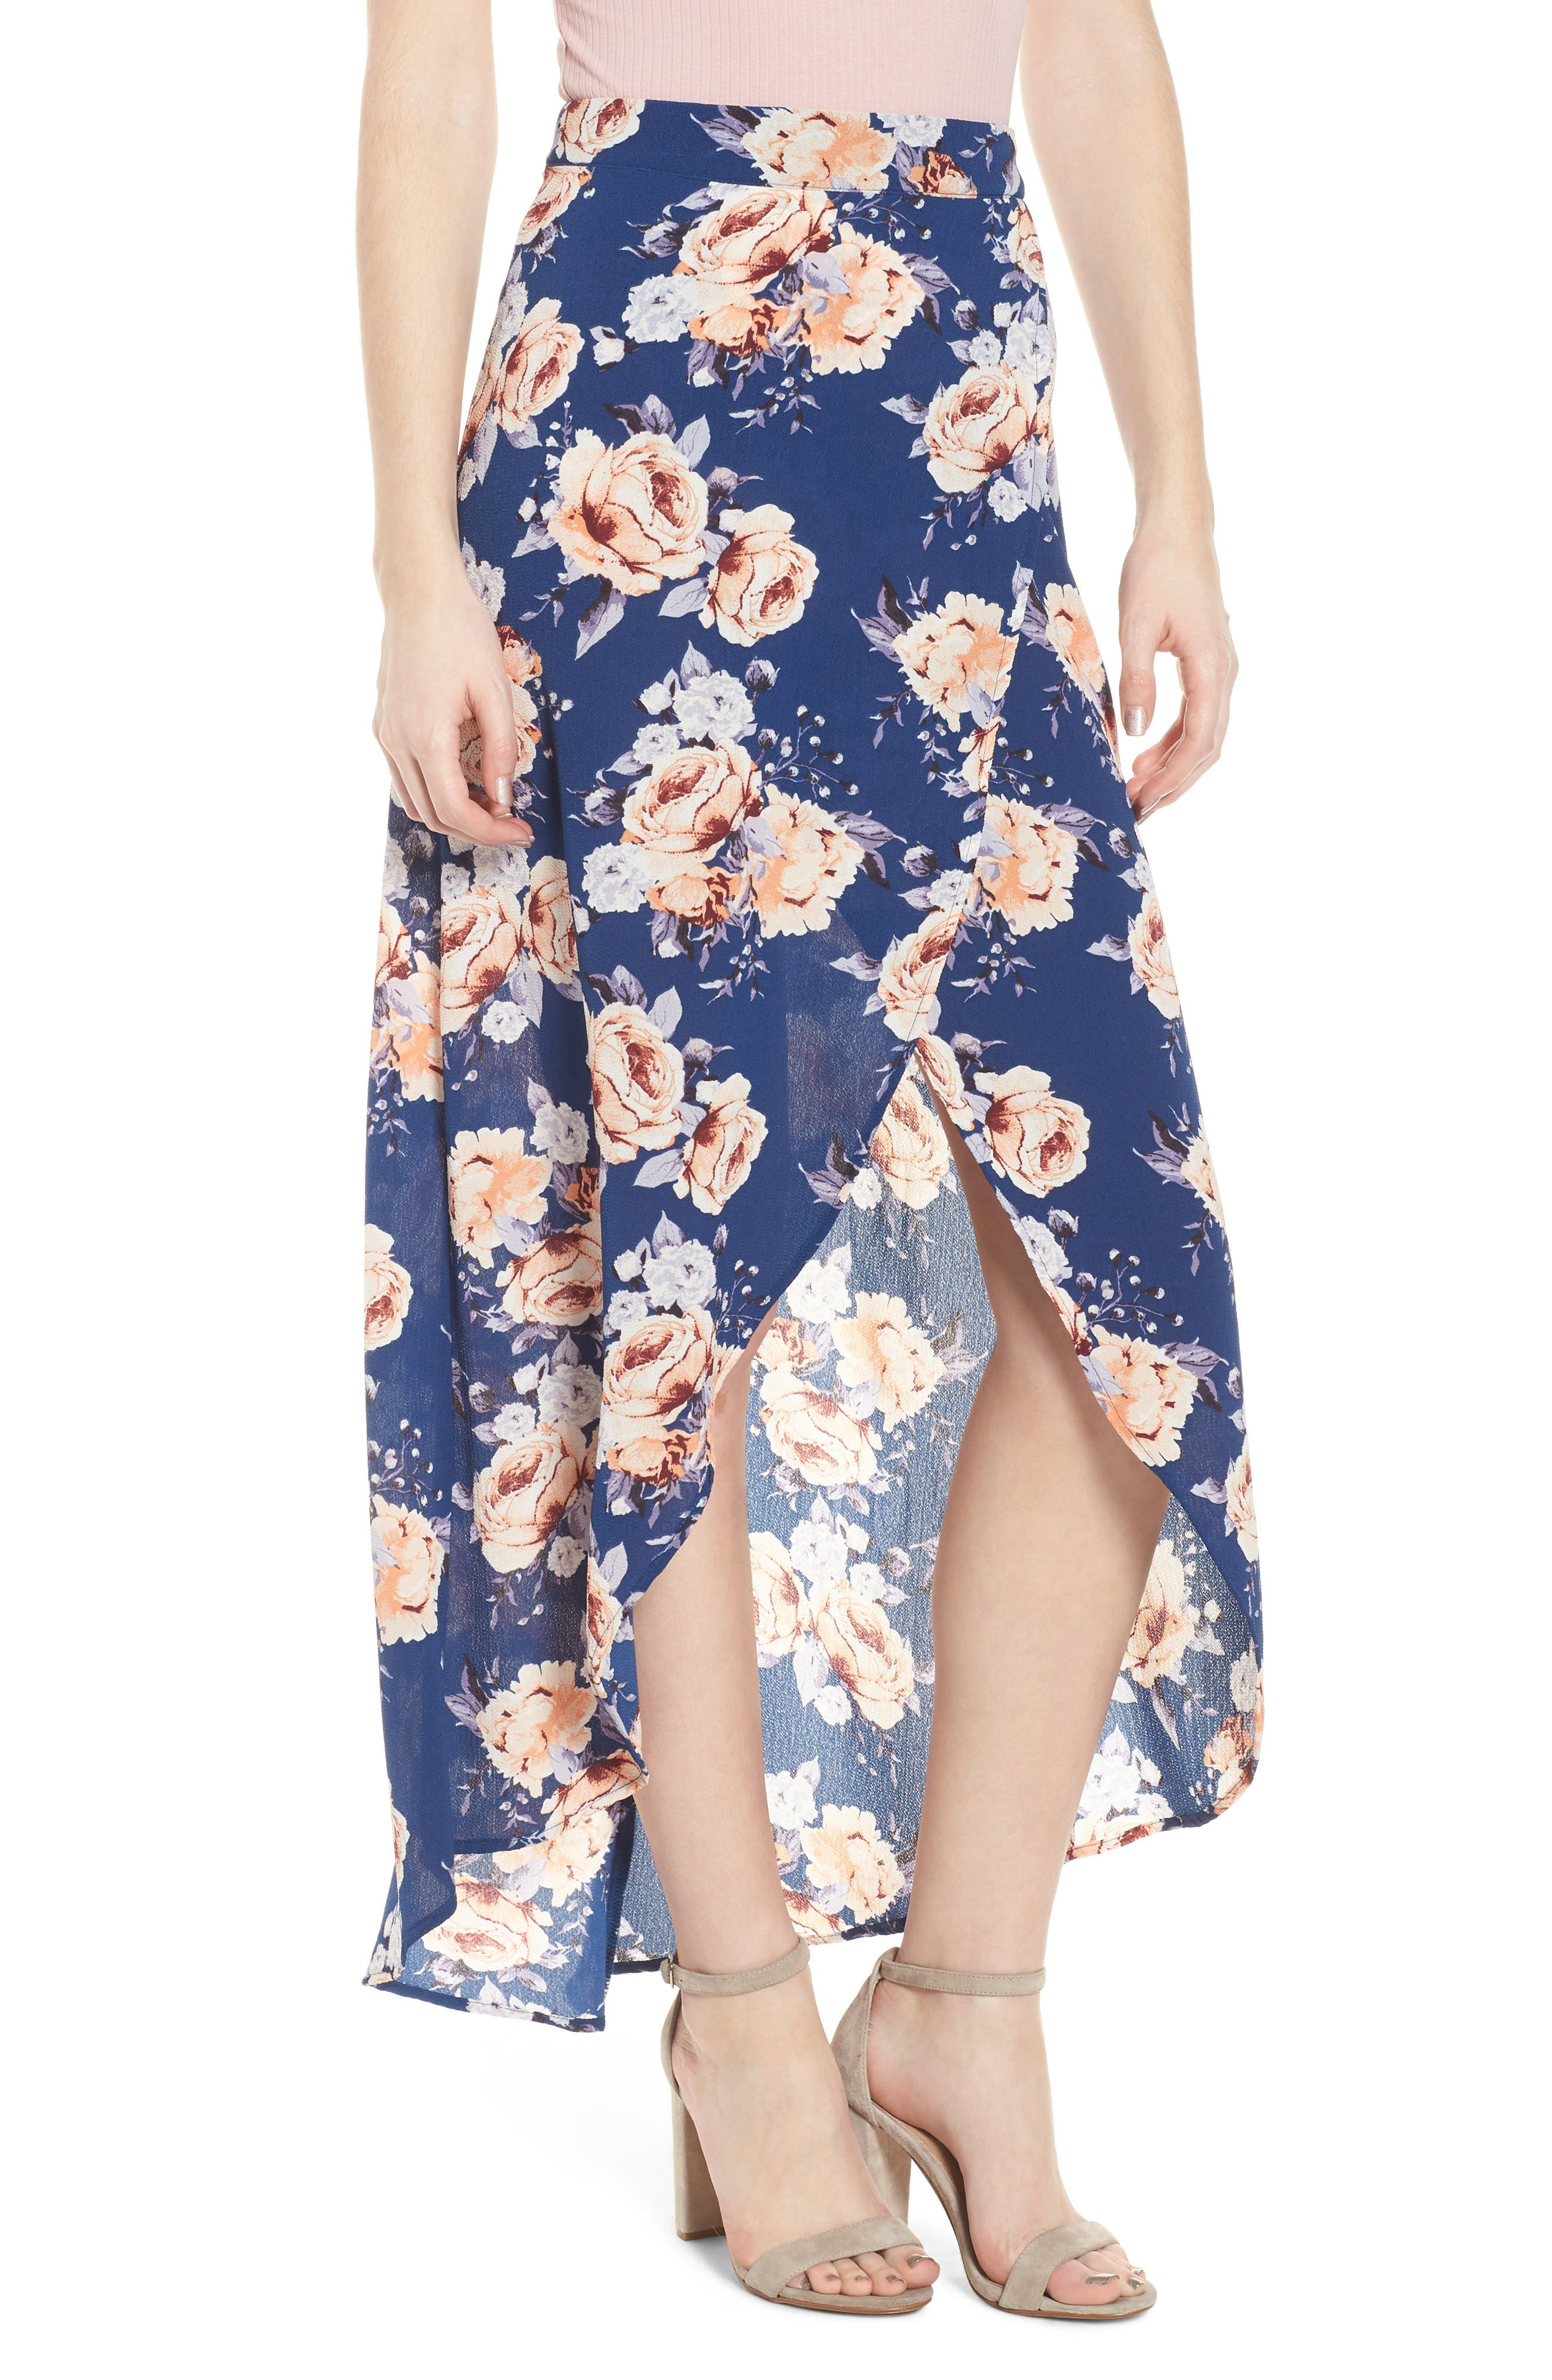 Mimi Chica Floral Print Maxi Skirt